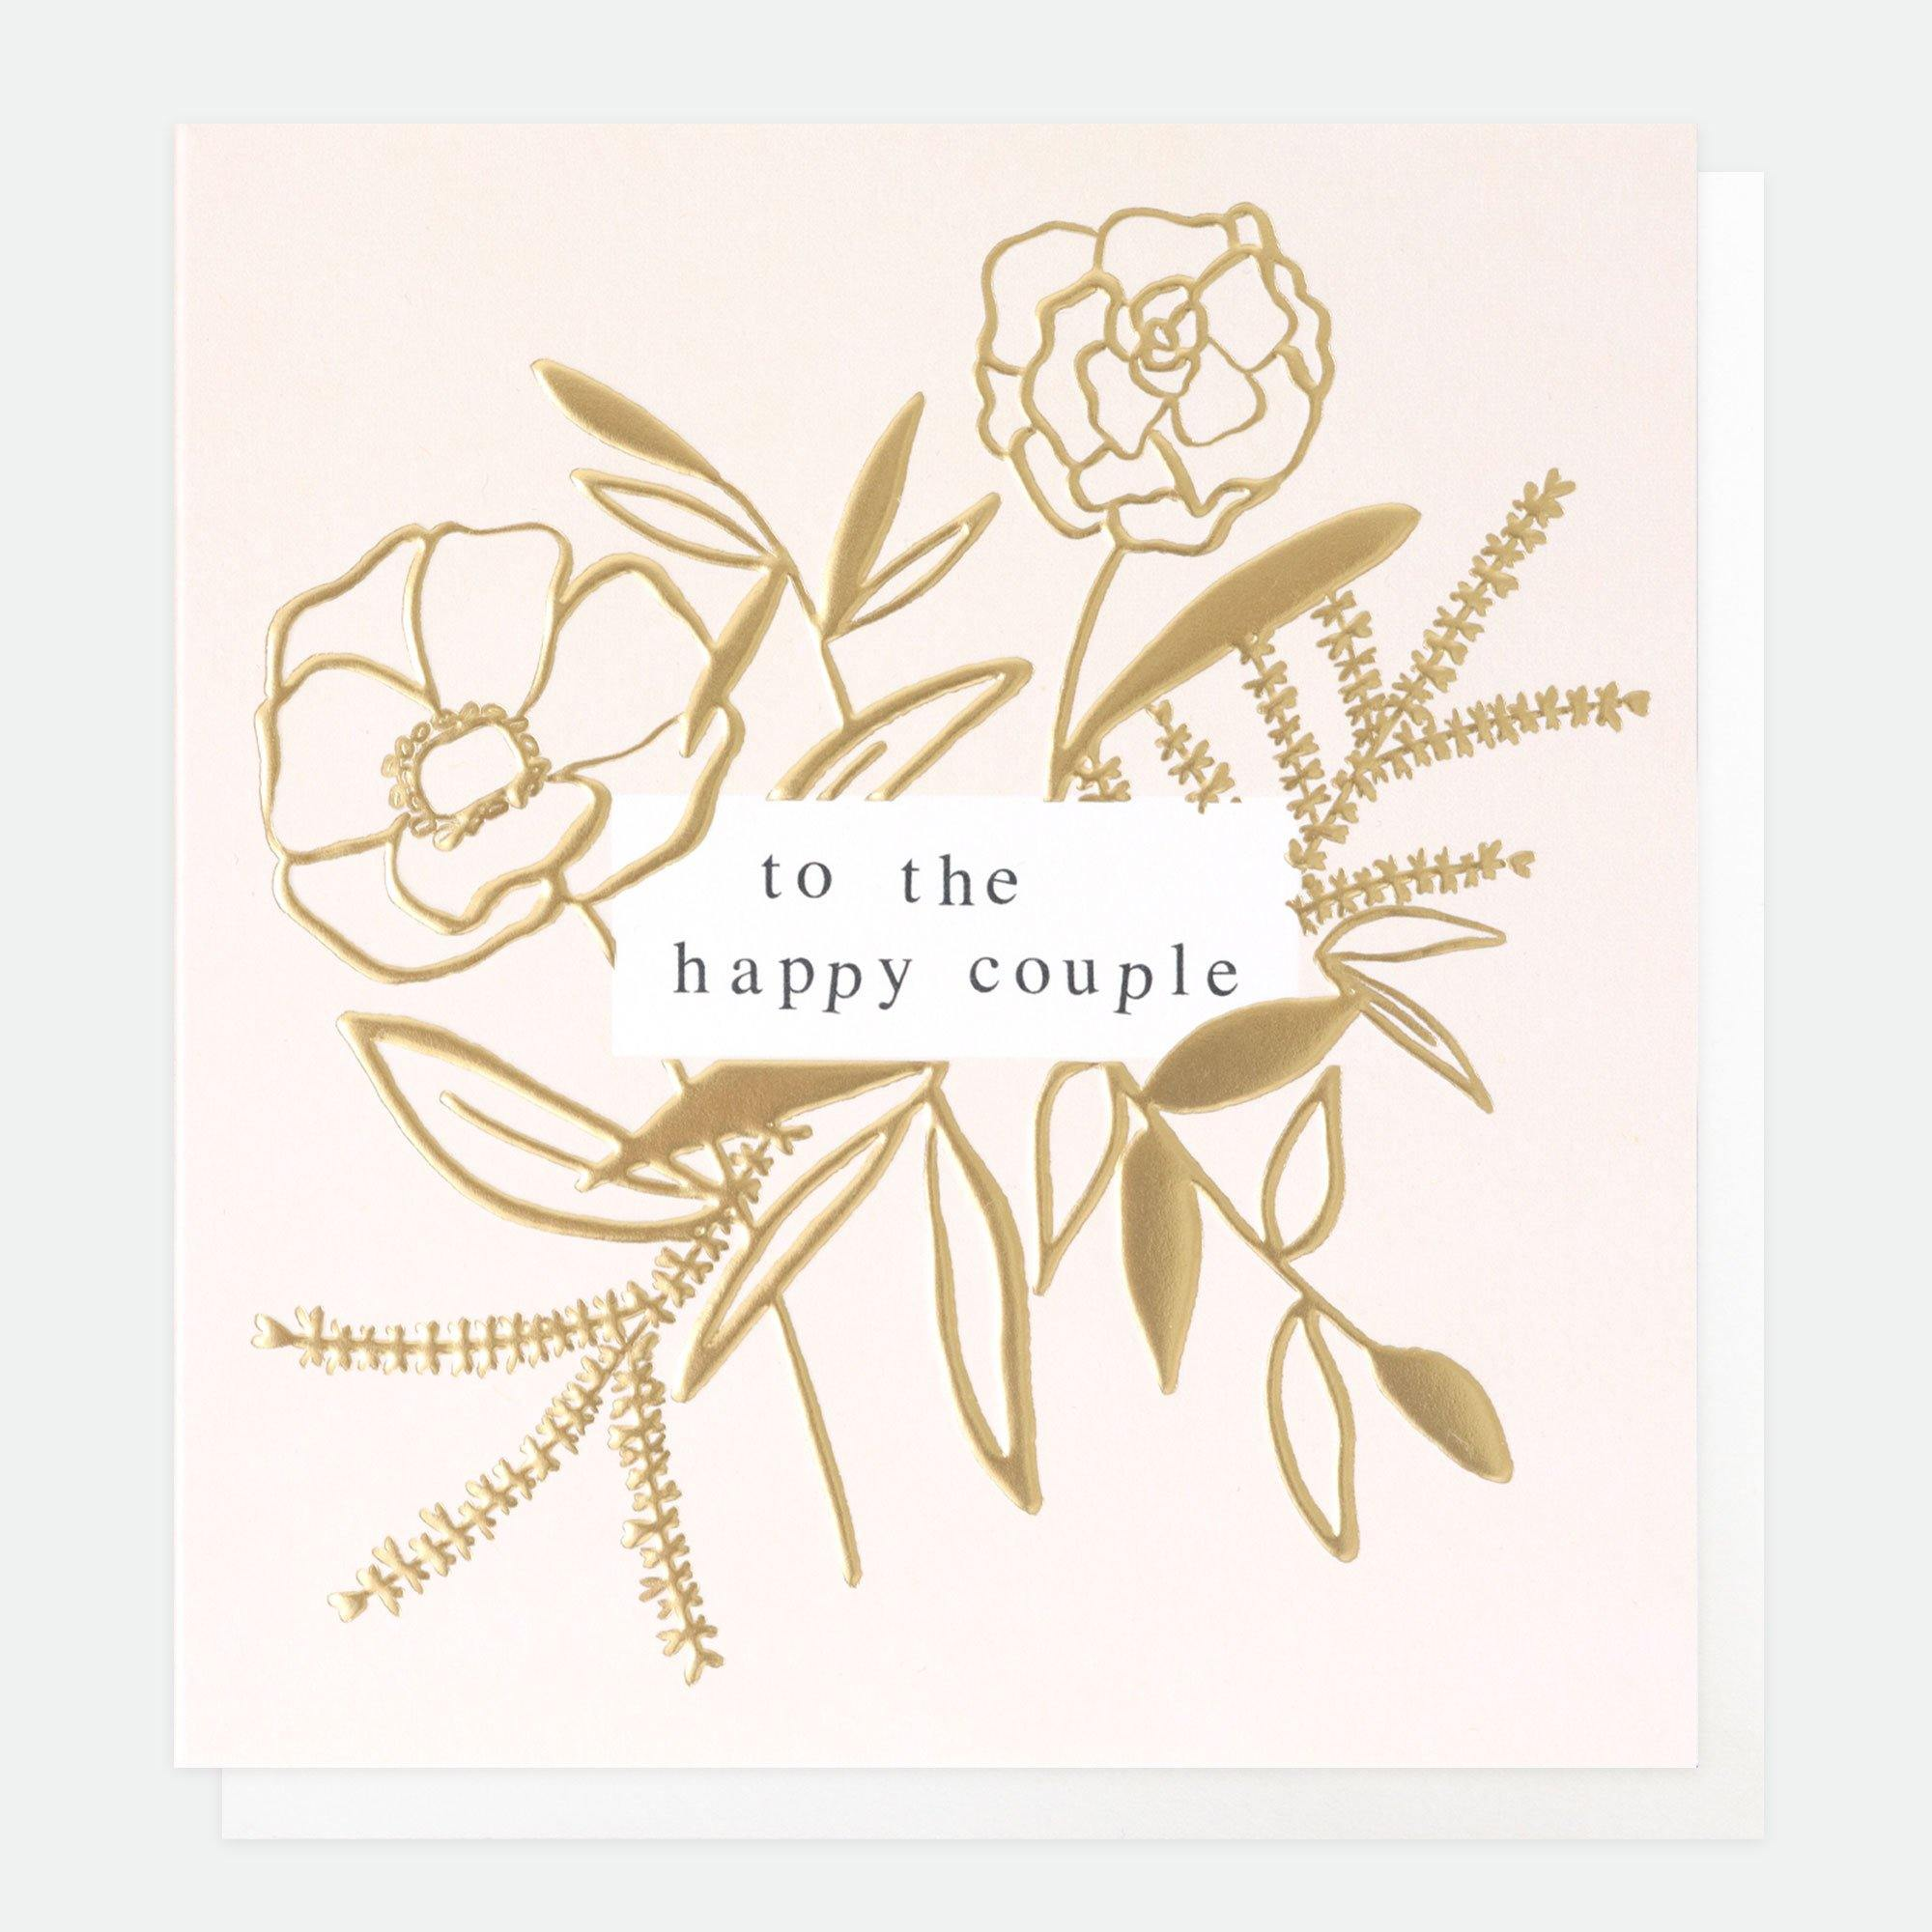 To The Happy Couple Card, Greeting & Note Cards by Insideout